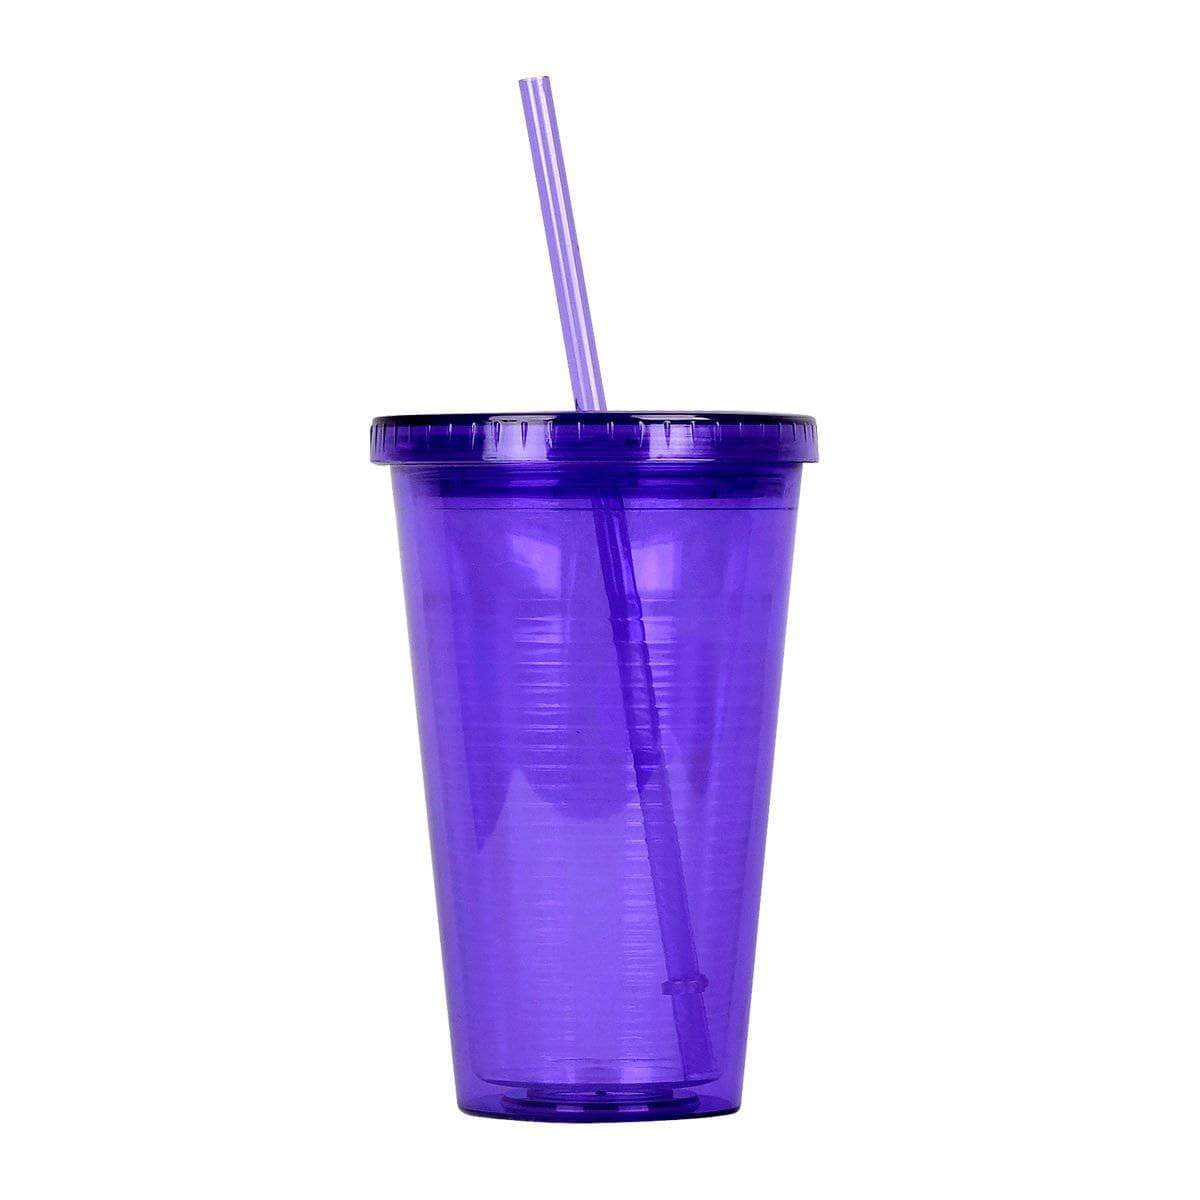 Geo Bottles Tumblers Purple 16oz Double Wall Cup with Straw - BPA Free